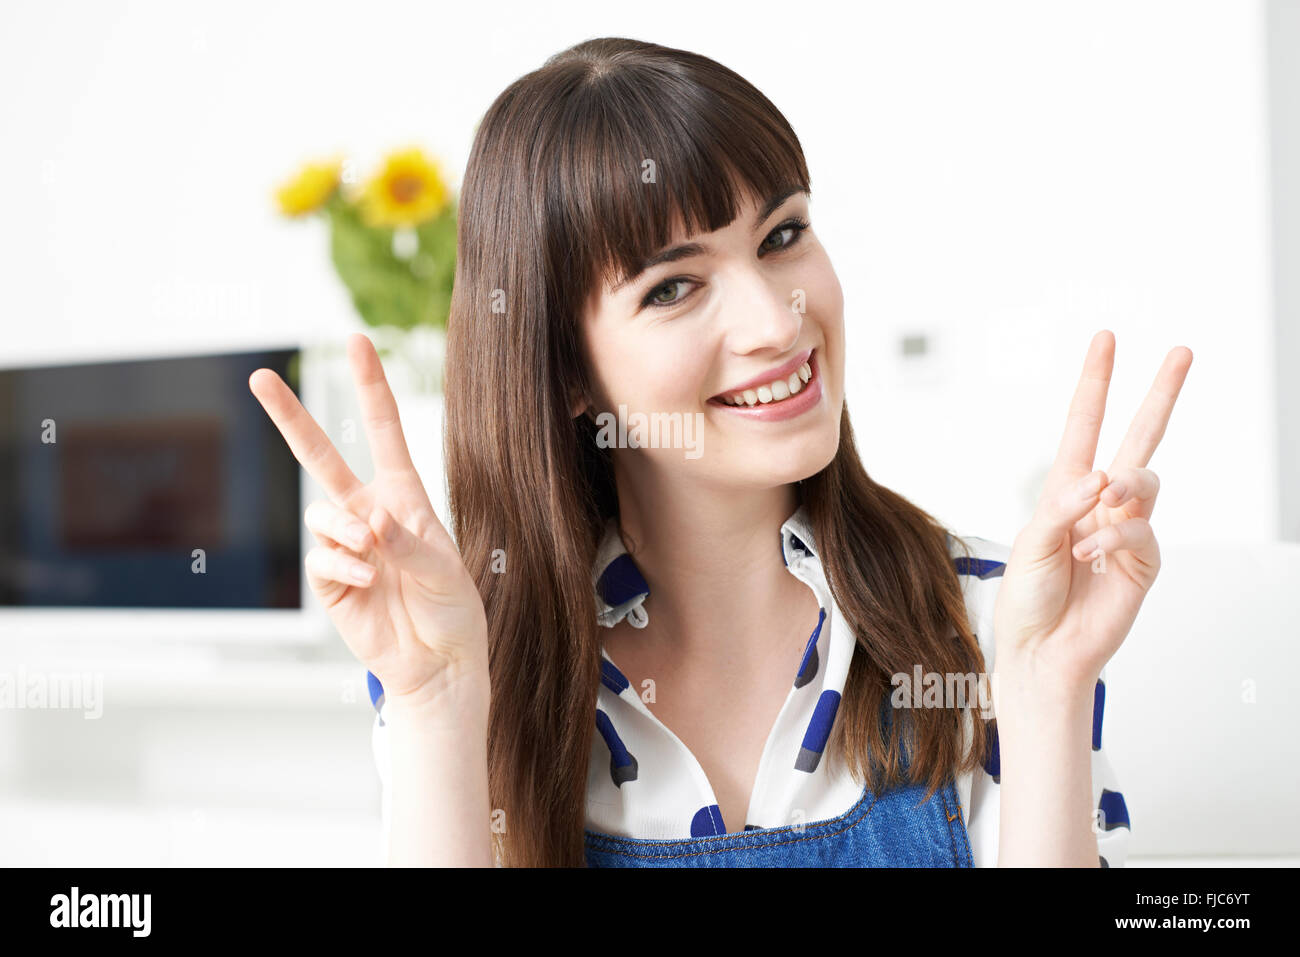 Young Woman Making Peace Gesture With Hands - Stock Image